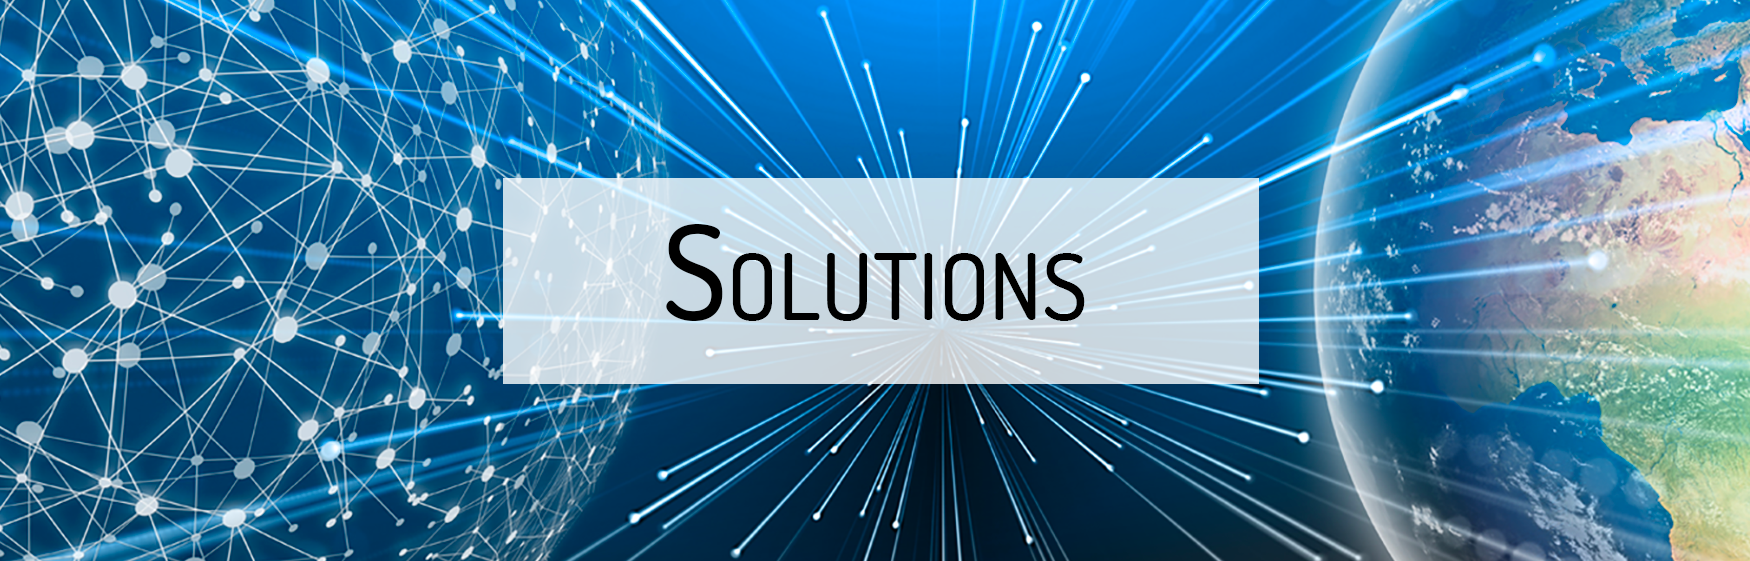 BANNIERE SOLUTIONS